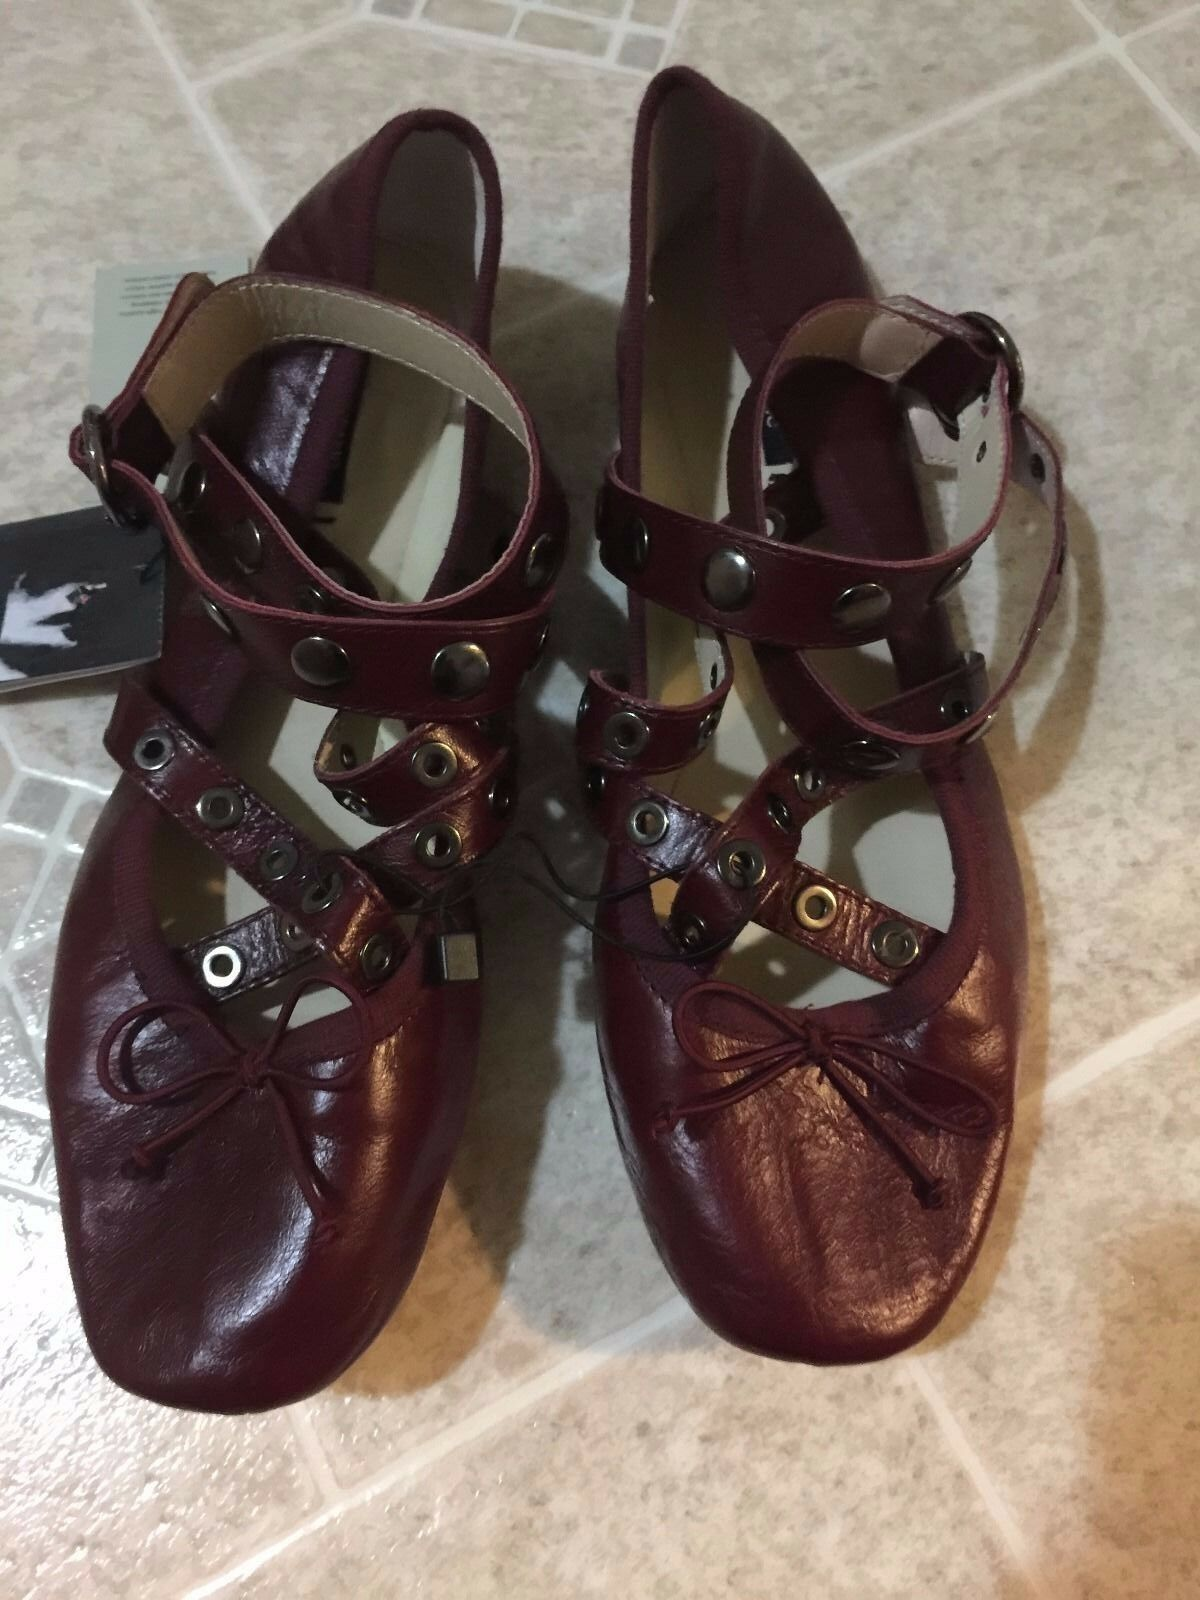 ZARA  LEATHER BALLET FLATS WITH STRAPS AND STUDS BURGUNDY- SIZE US 5